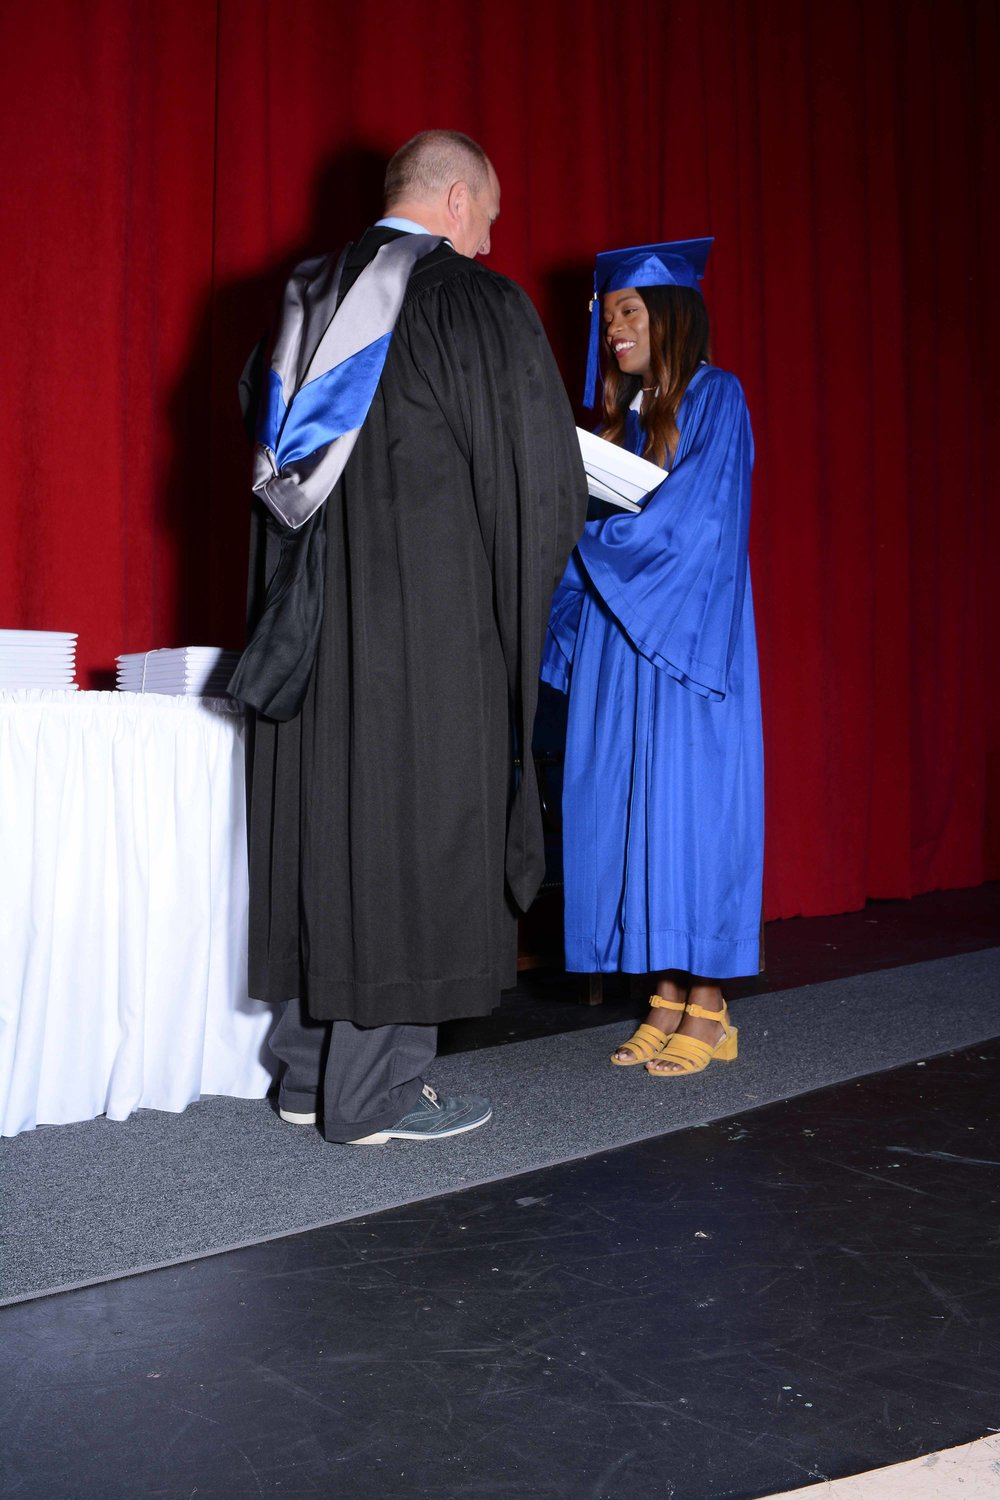 May14 Commencement145.jpg